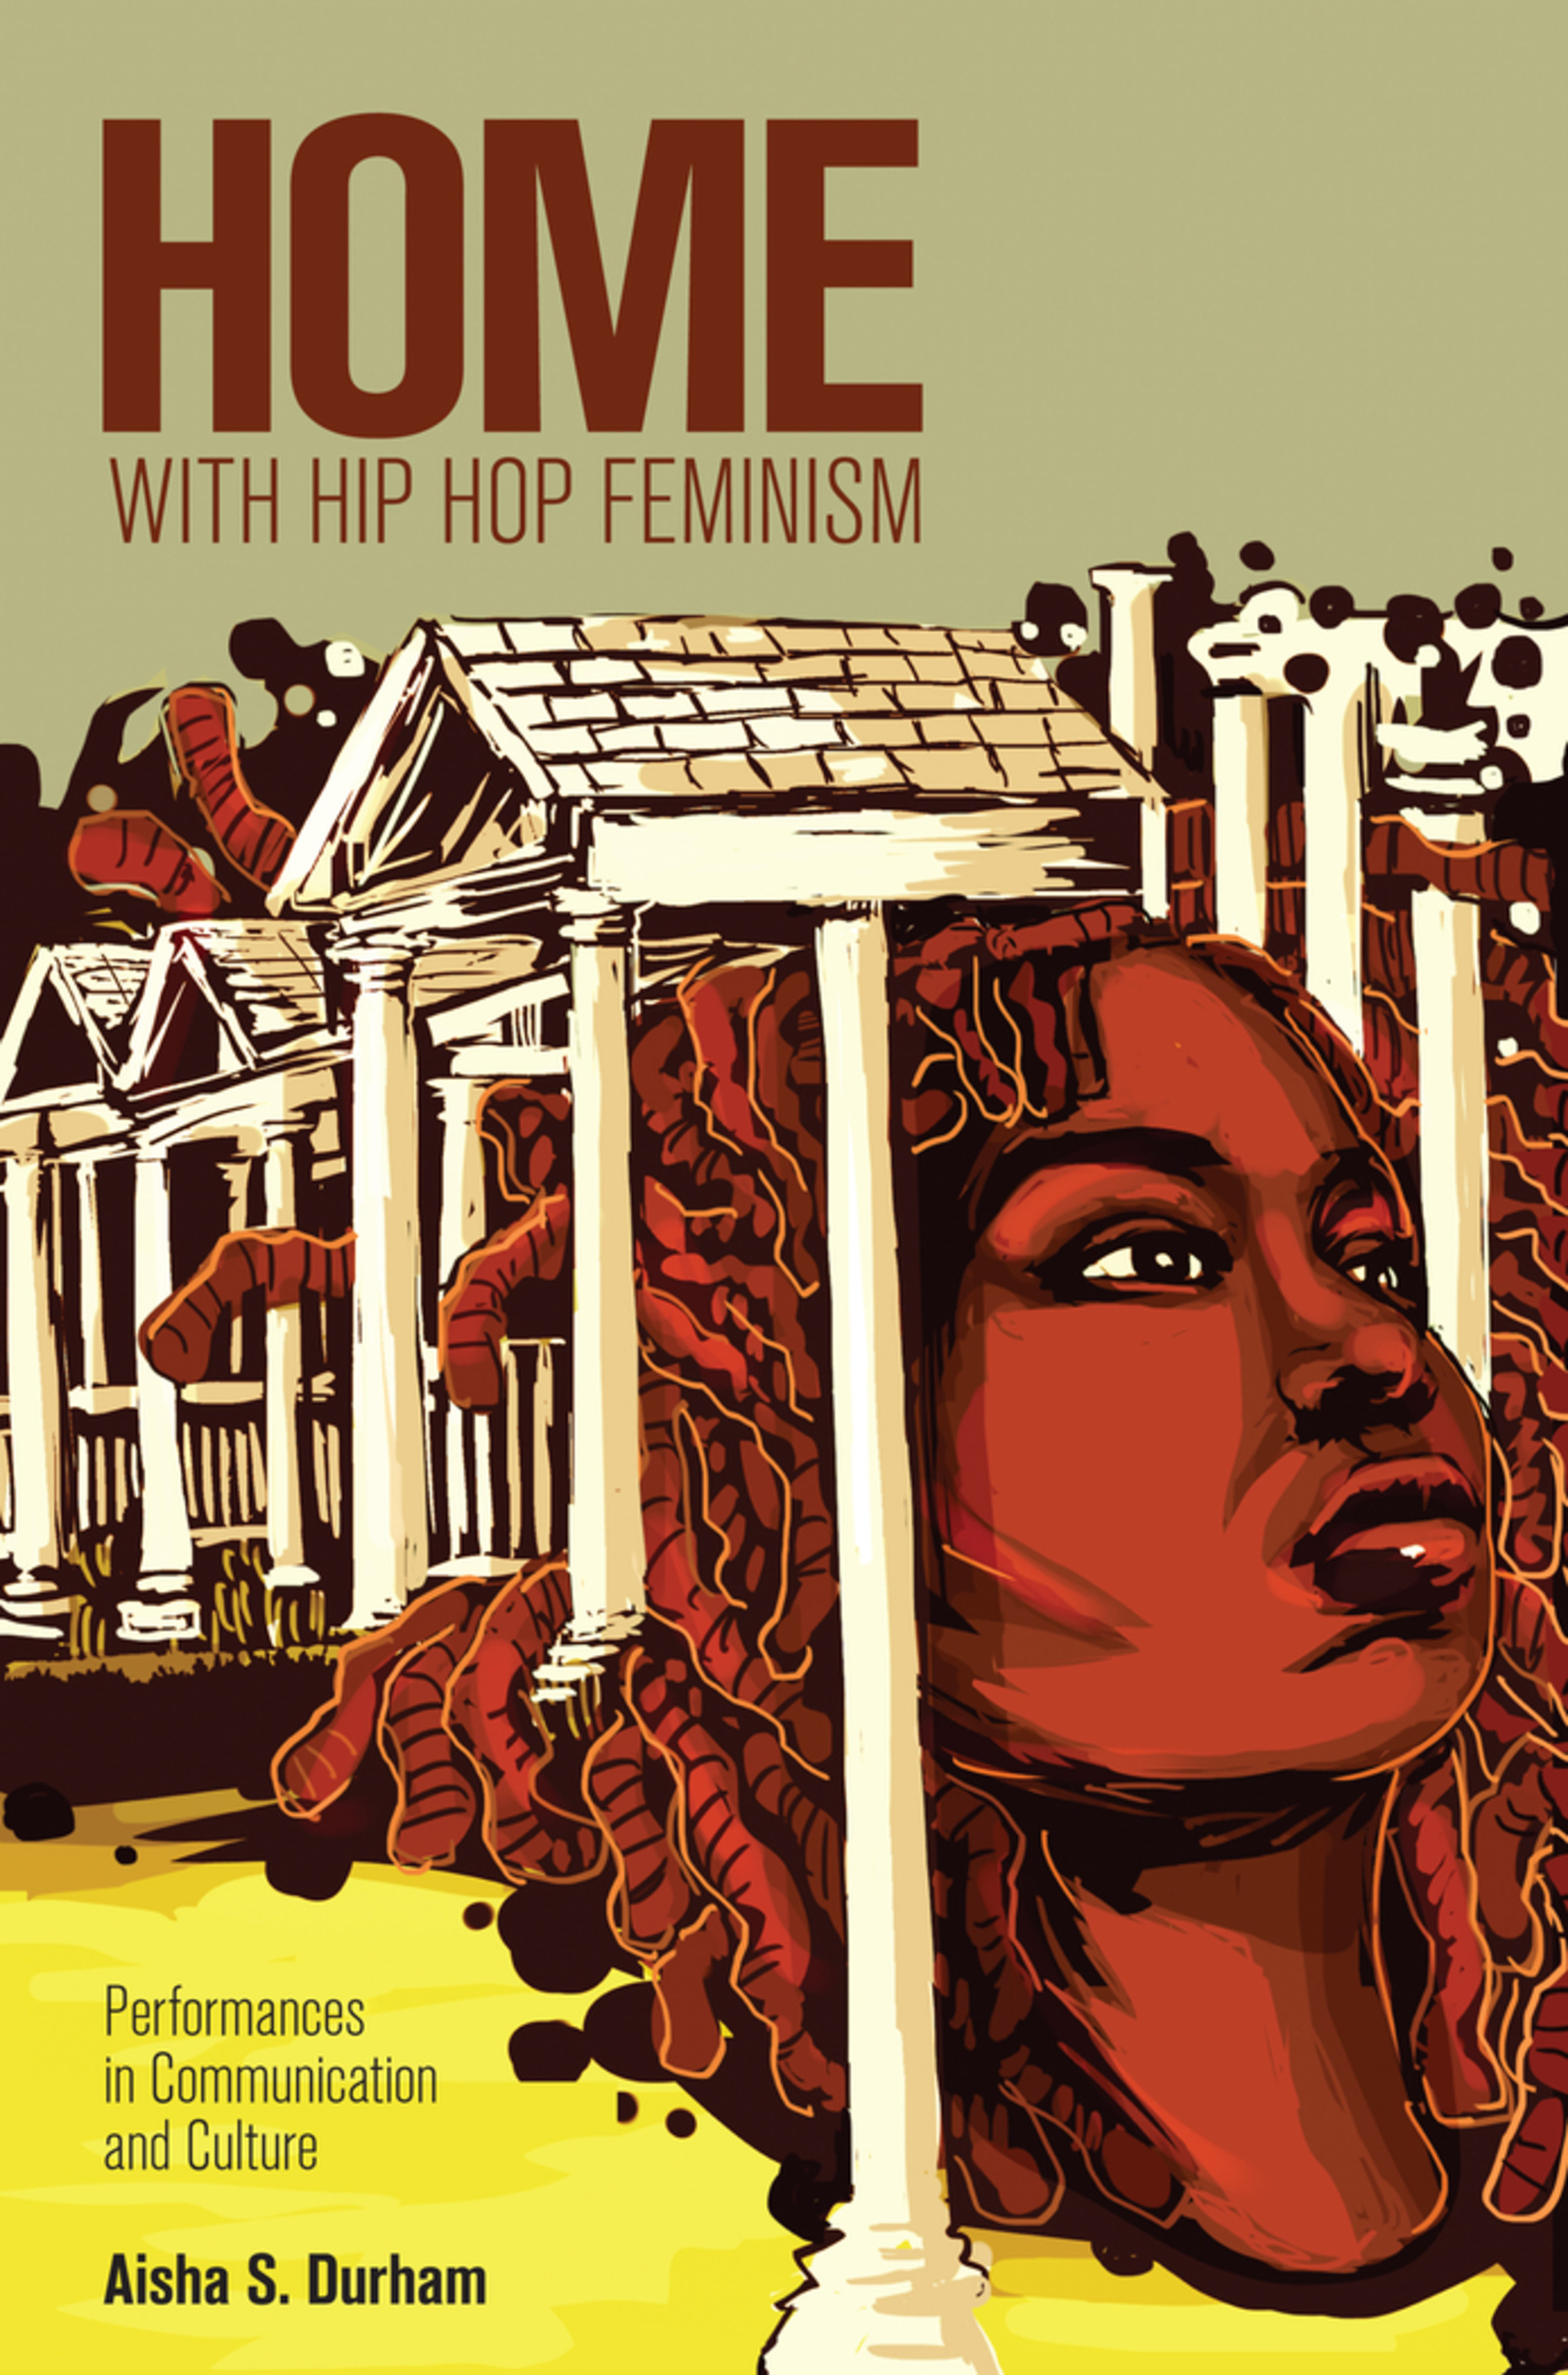 Title: Home with Hip Hop Feminism